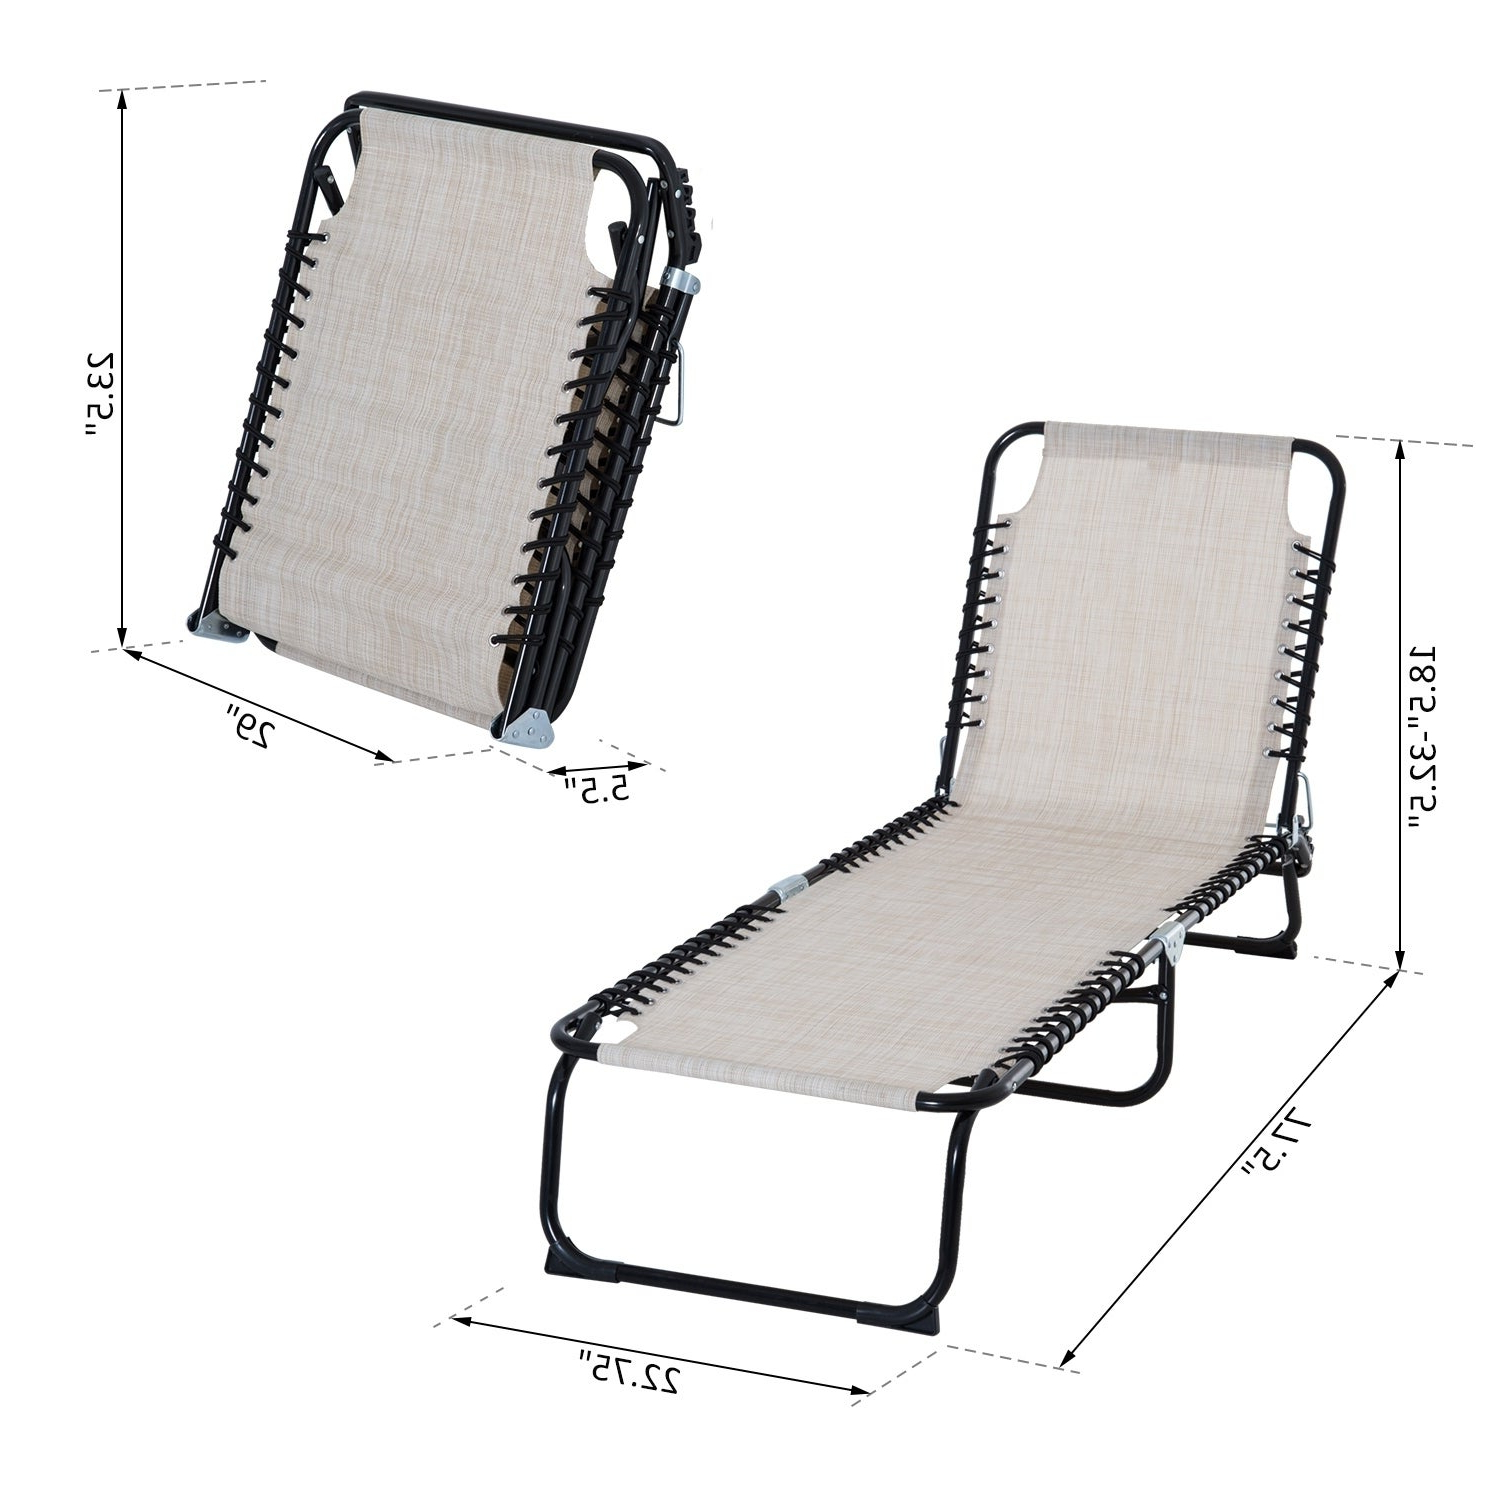 3 Position Portable Folding Reclining Beach Chaise Lounges Throughout Most Recent Outsunny 3 Position Portable Reclining Beach Chaise Lounge Folding Chair Outdoor Patio – Cream White (View 8 of 25)